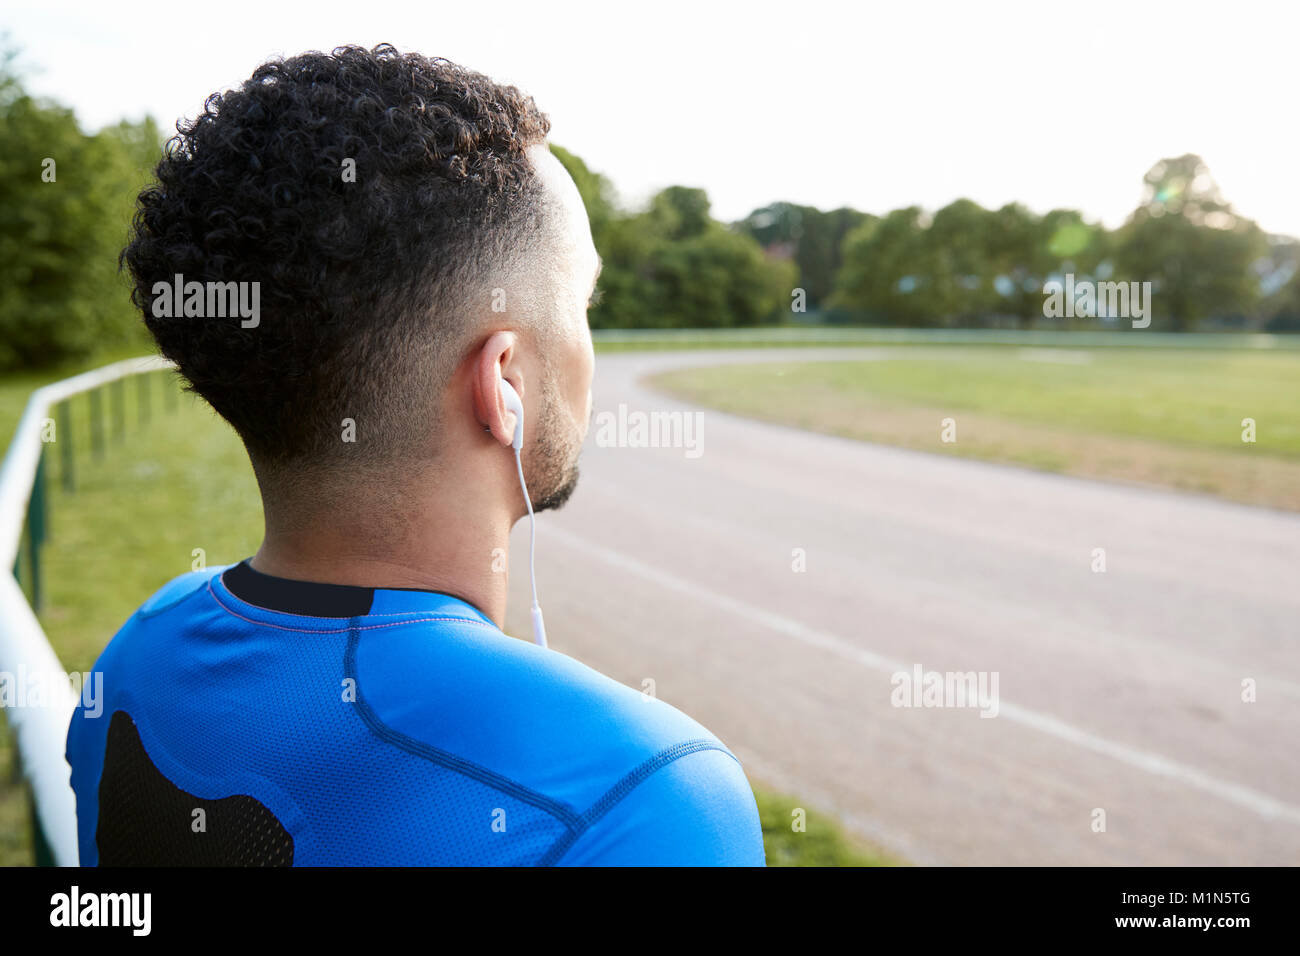 Male athlete at track looking away, close up, back view Stock Photo